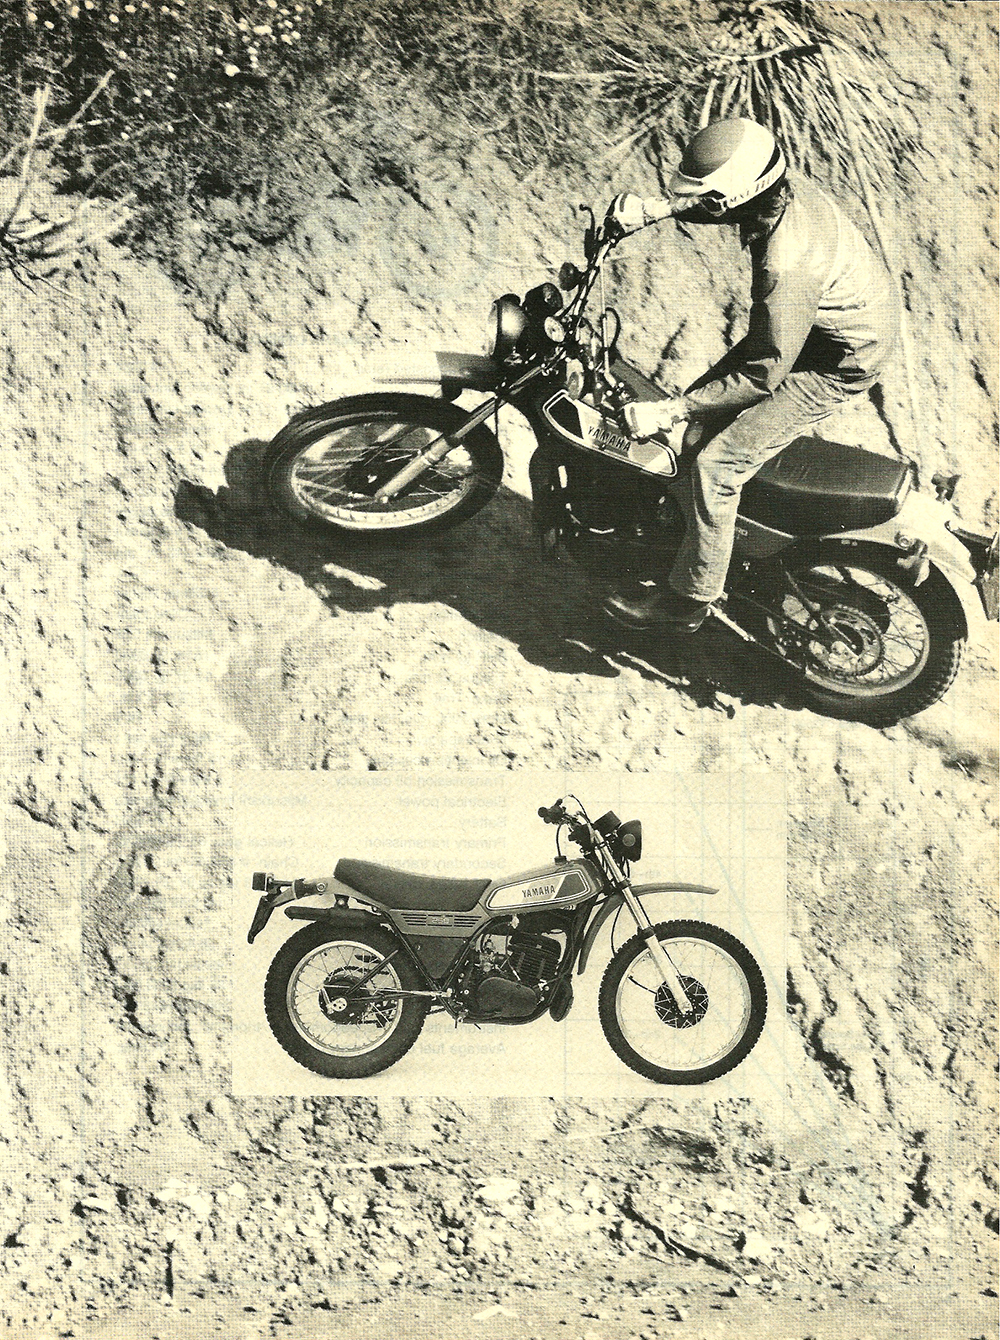 1977 Yamaha DT250D road test 3.jpg